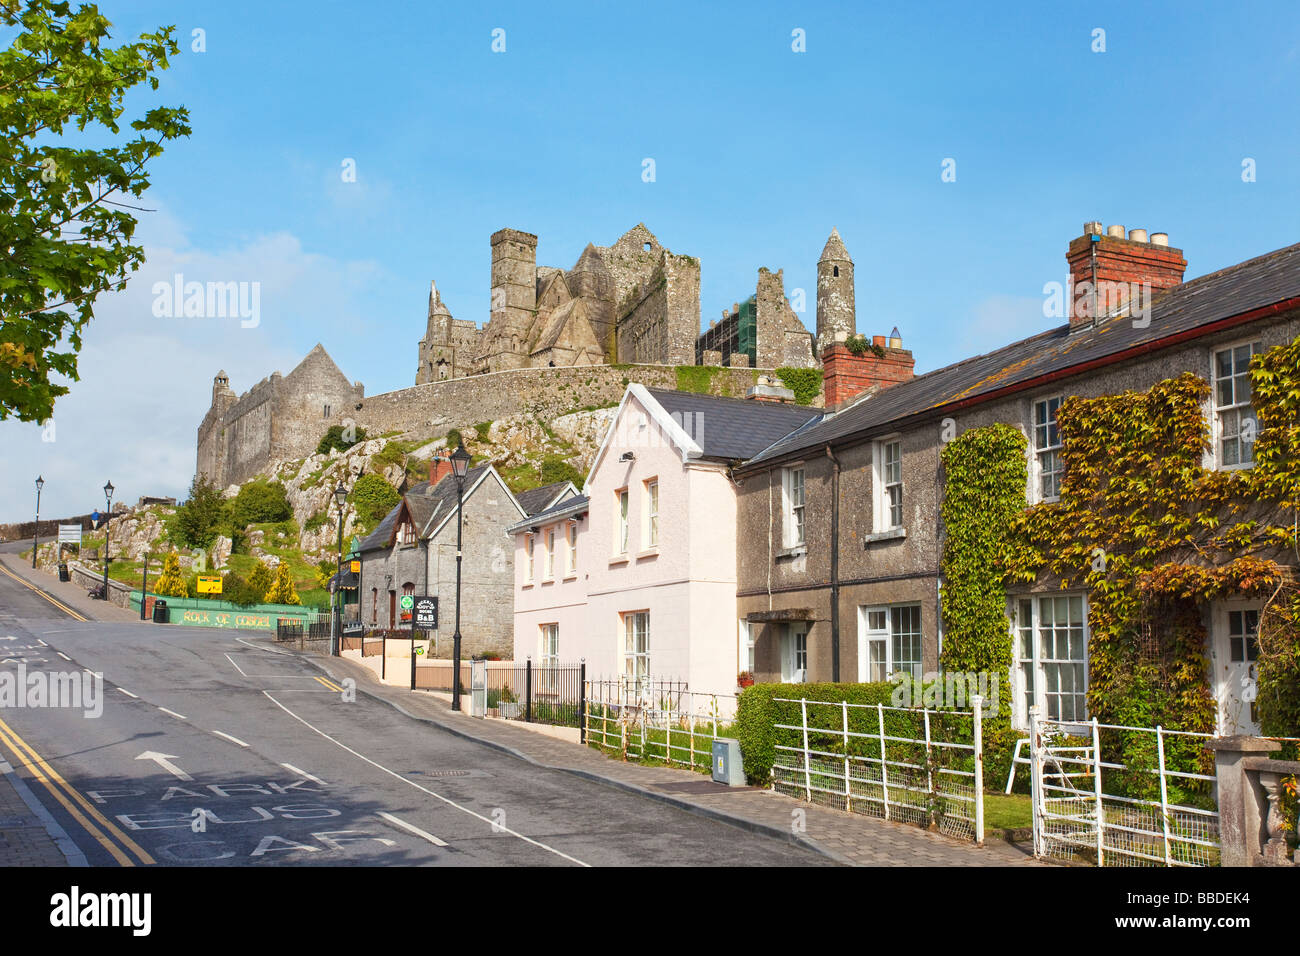 Rock of Cashel County Tipperary Ireland Eire Irish Republic Europe EU - Stock Image